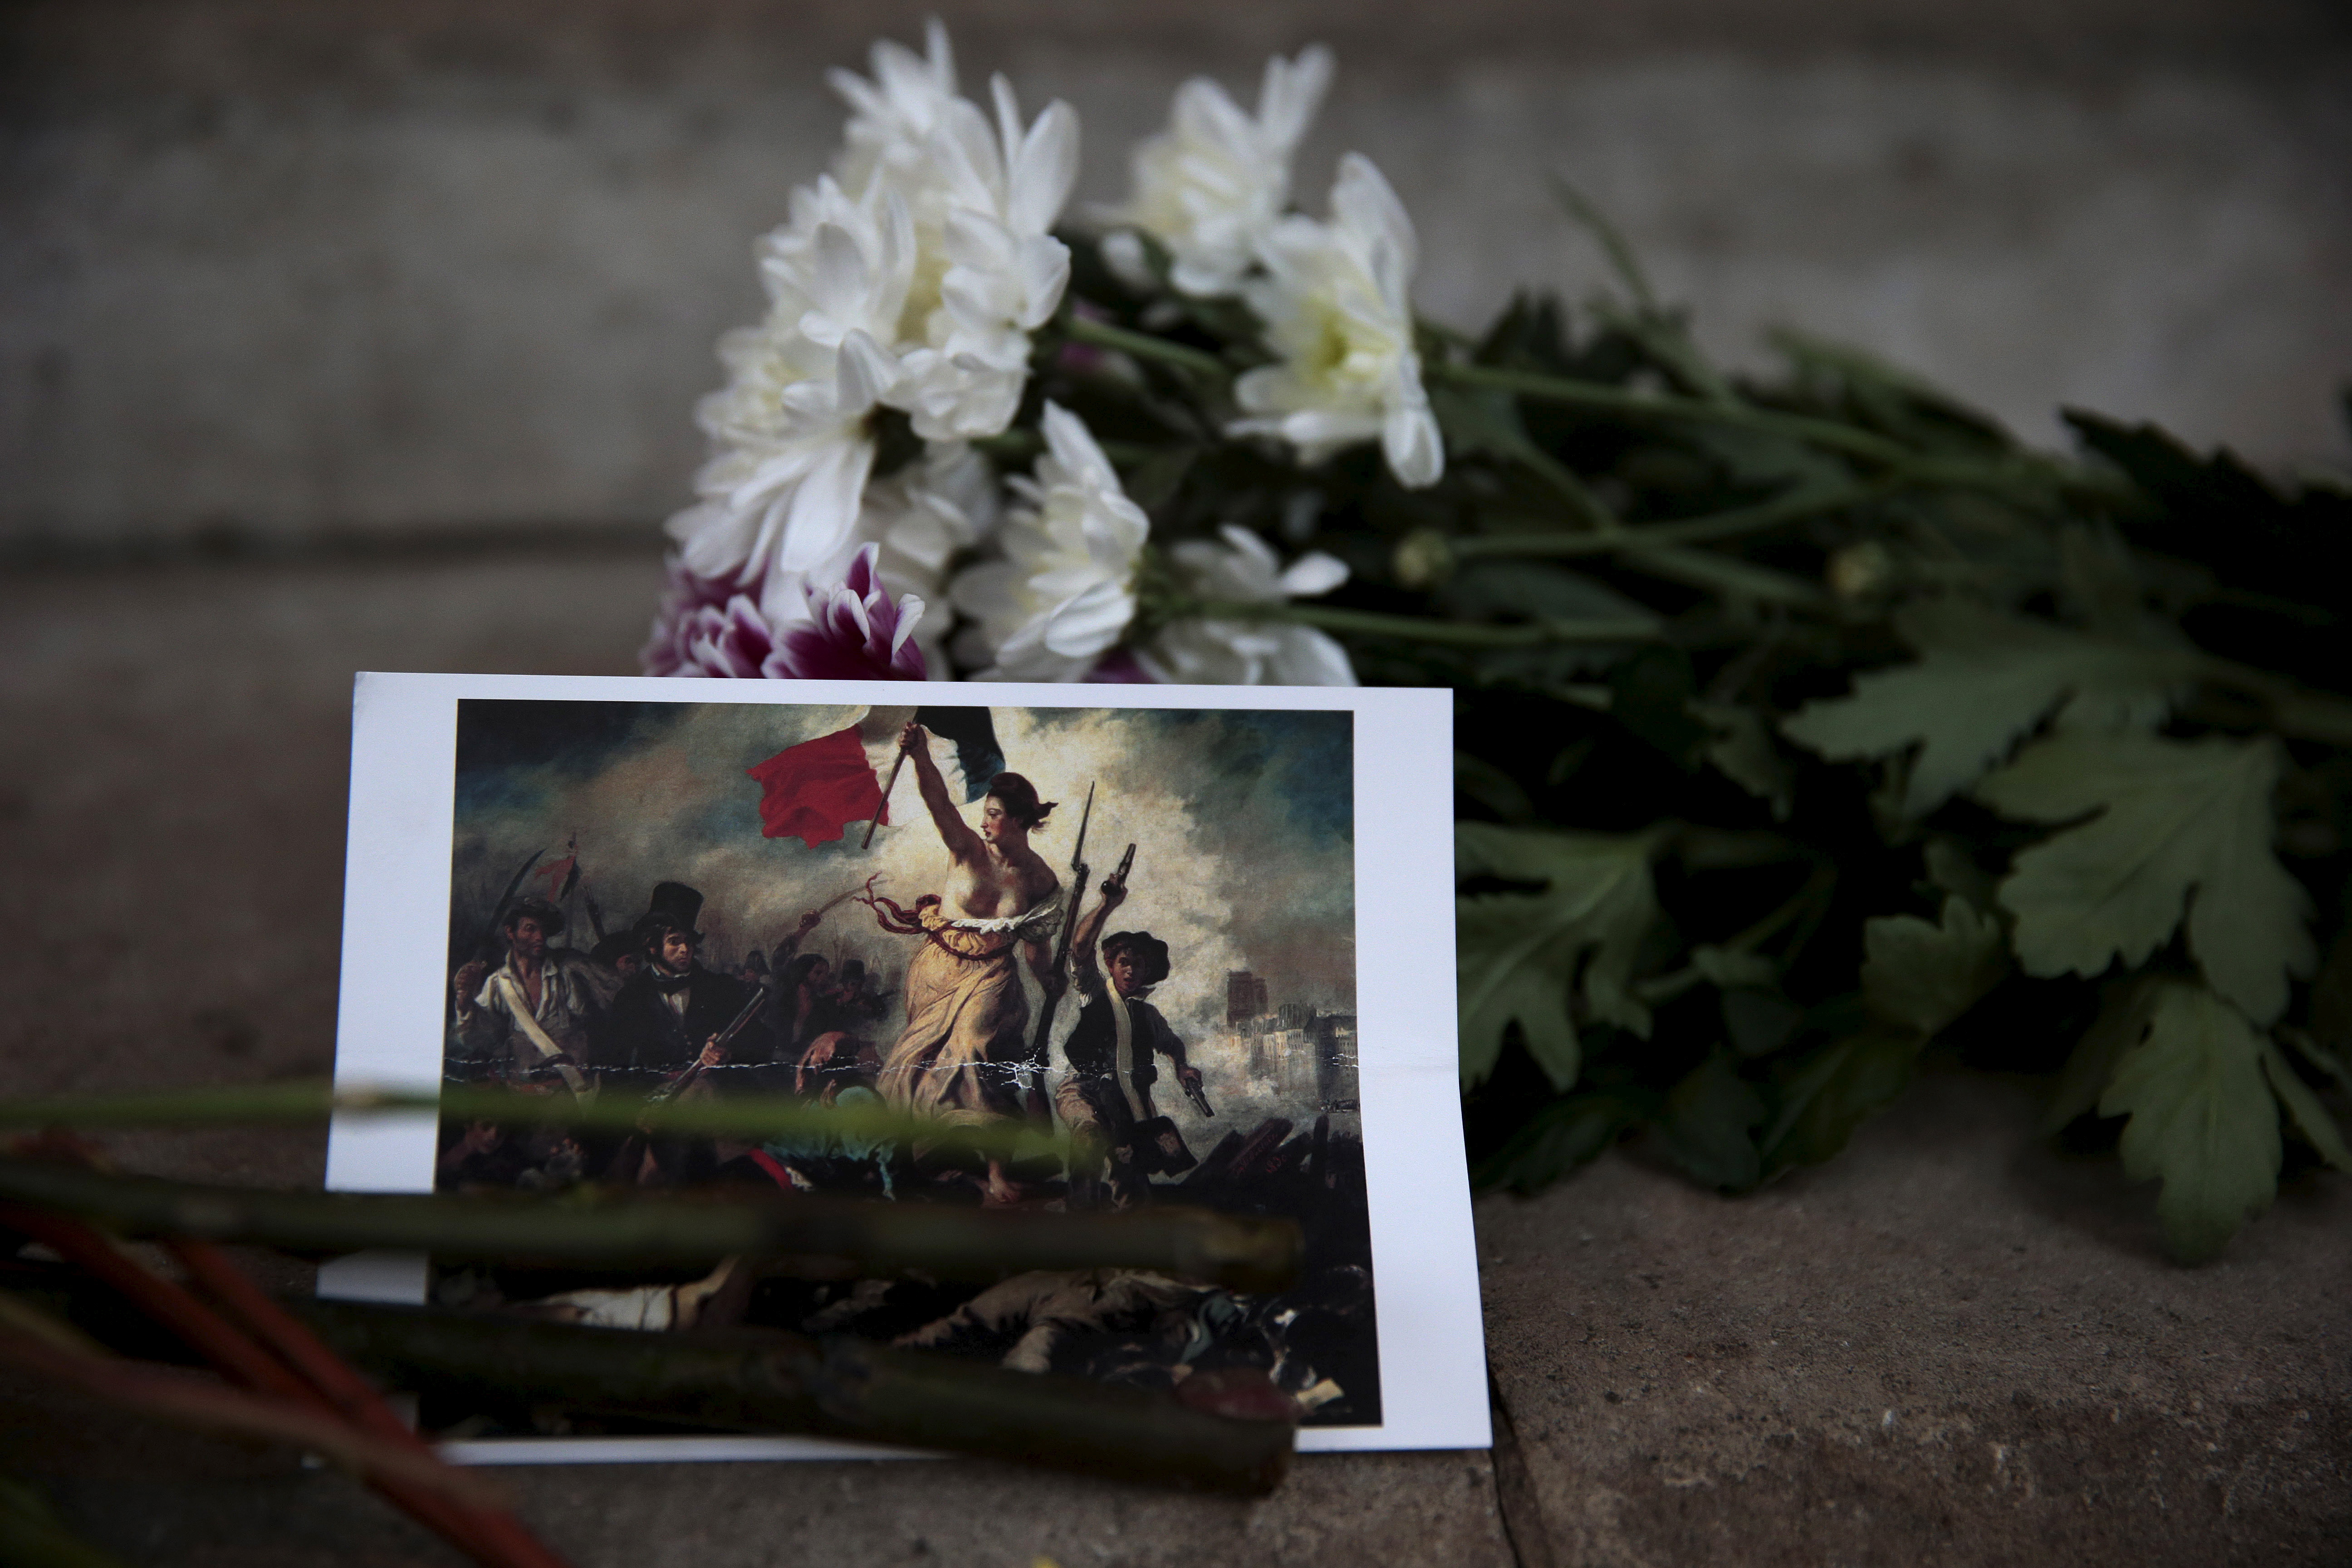 A postcard and flowers are left in tribute to victims of Paris attacks outside the French Embassy in London, Britain November 14, 2015. REUTERS/Suzanne Plunkett - RTS6Z8C